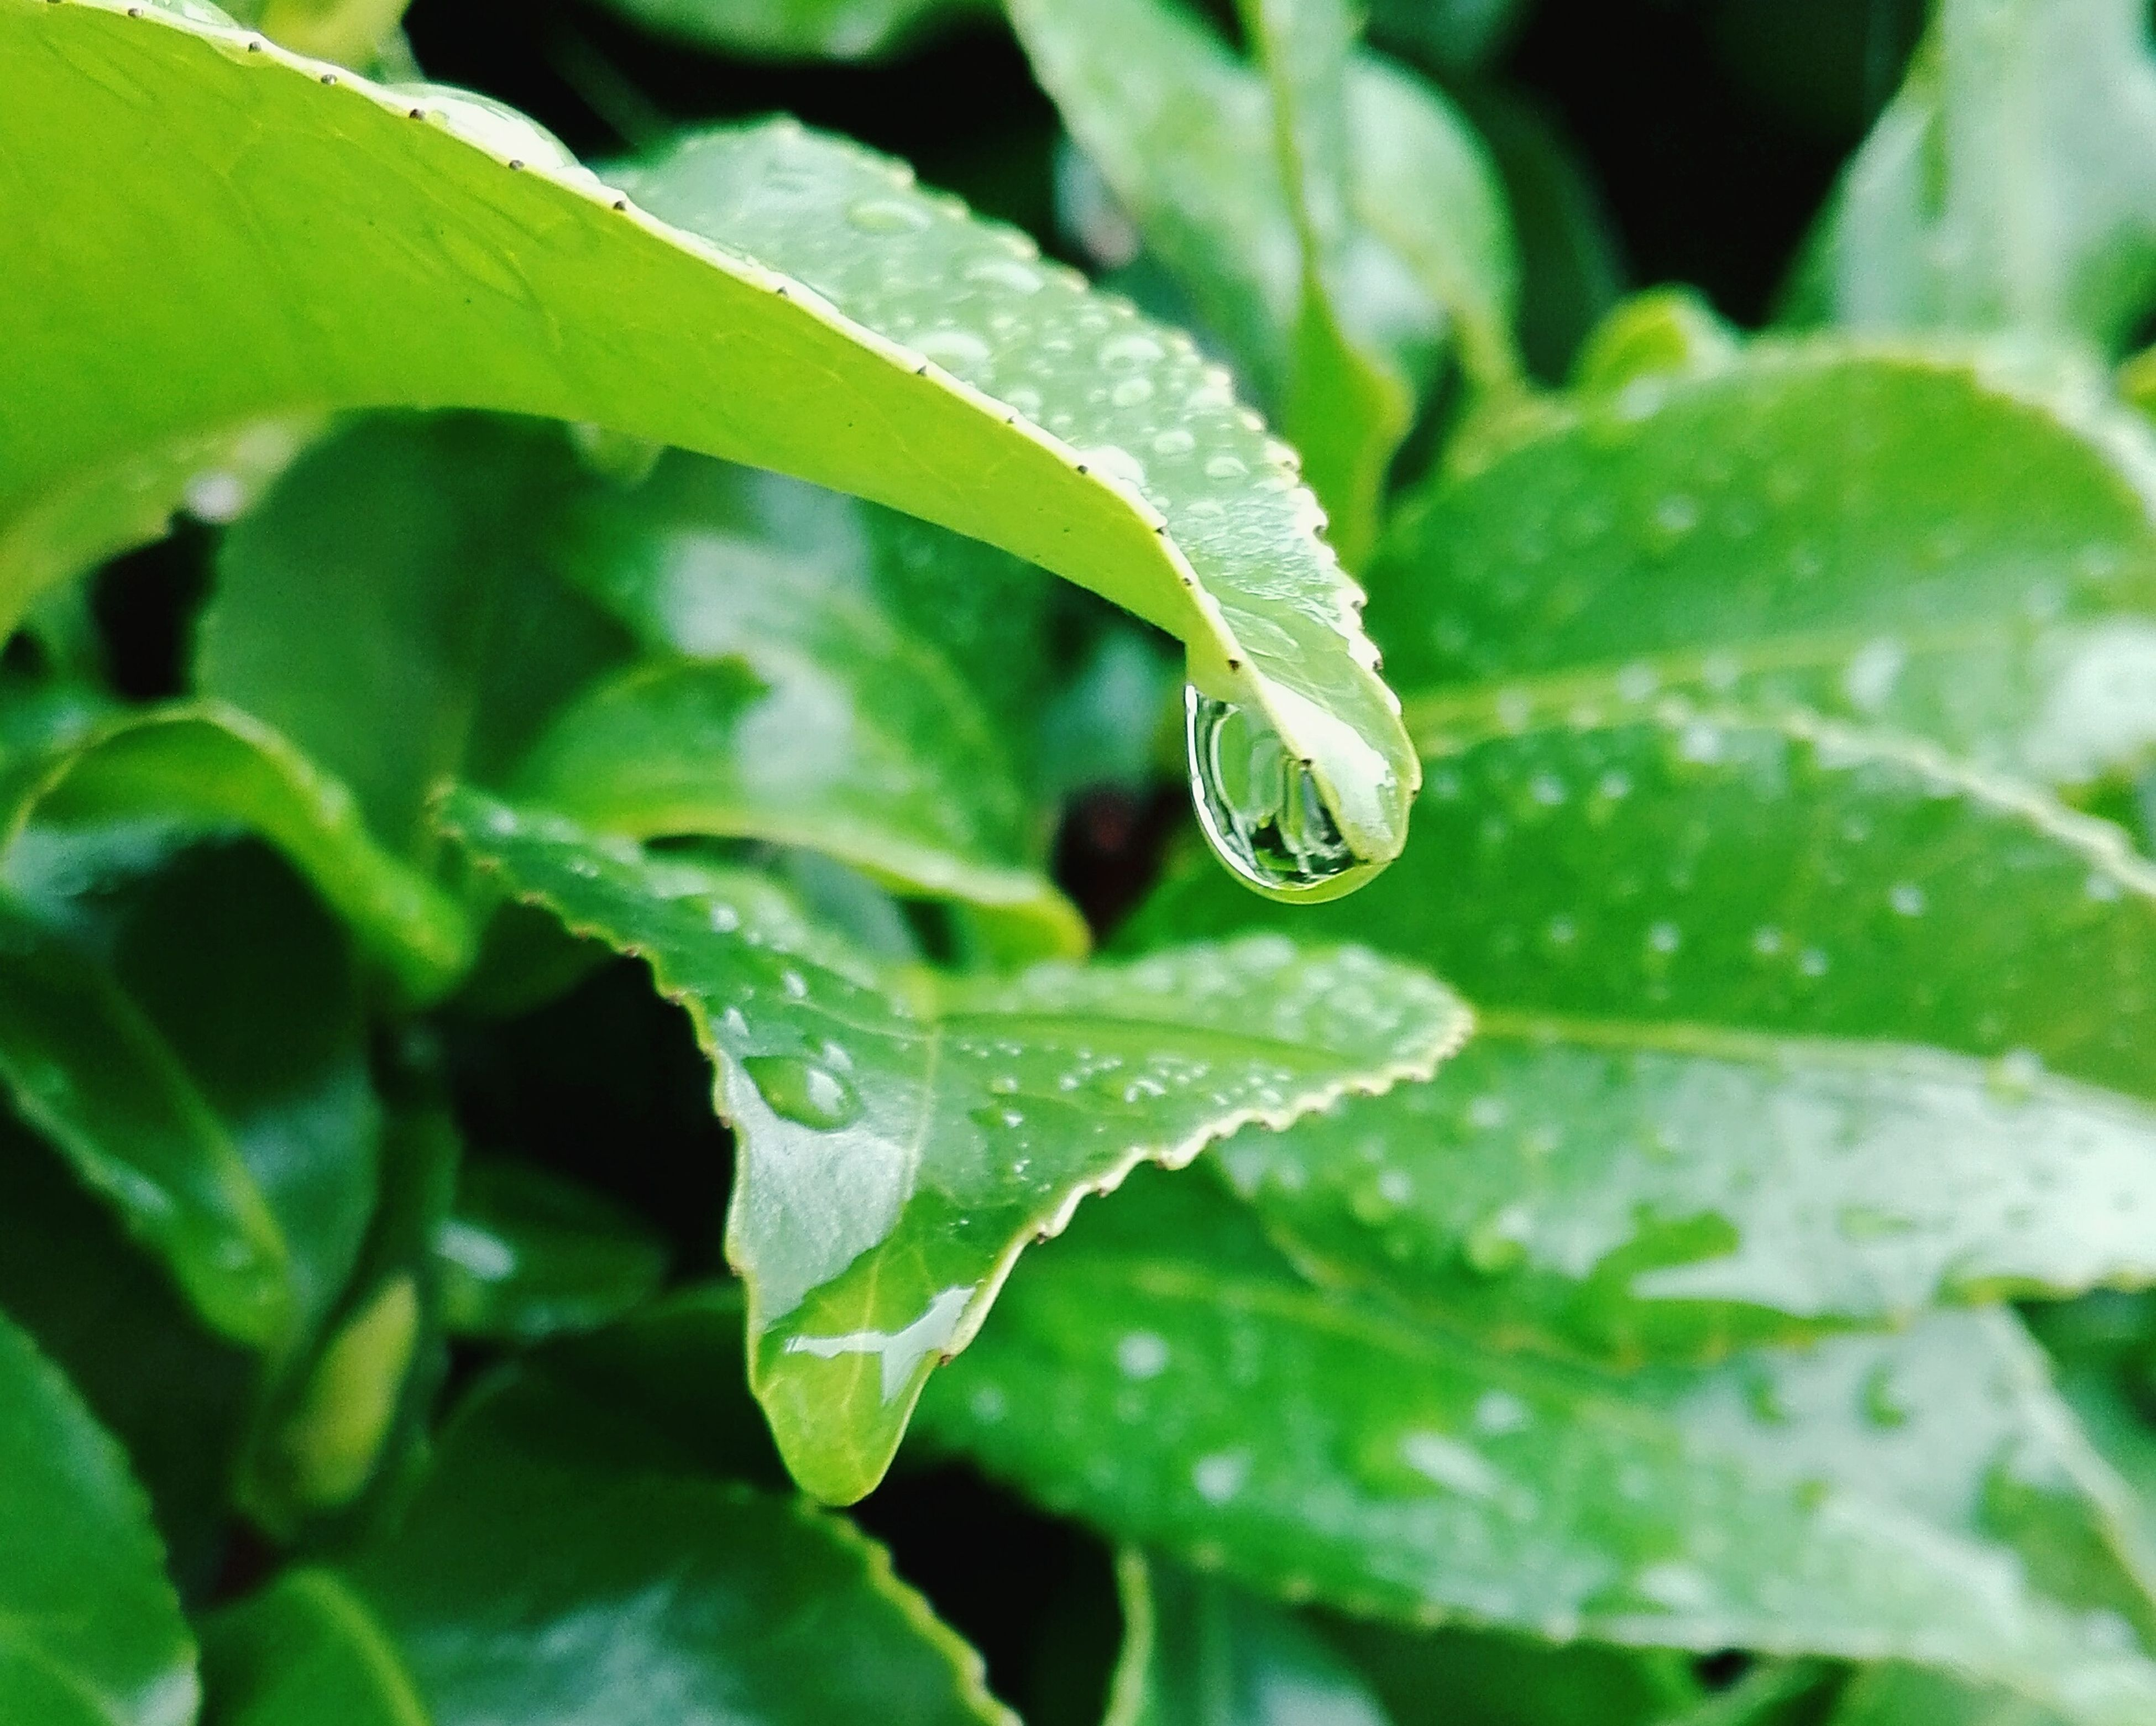 leaf, green color, drop, growth, close-up, plant, wet, water, freshness, leaf vein, nature, focus on foreground, beauty in nature, leaves, selective focus, green, dew, fragility, day, no people